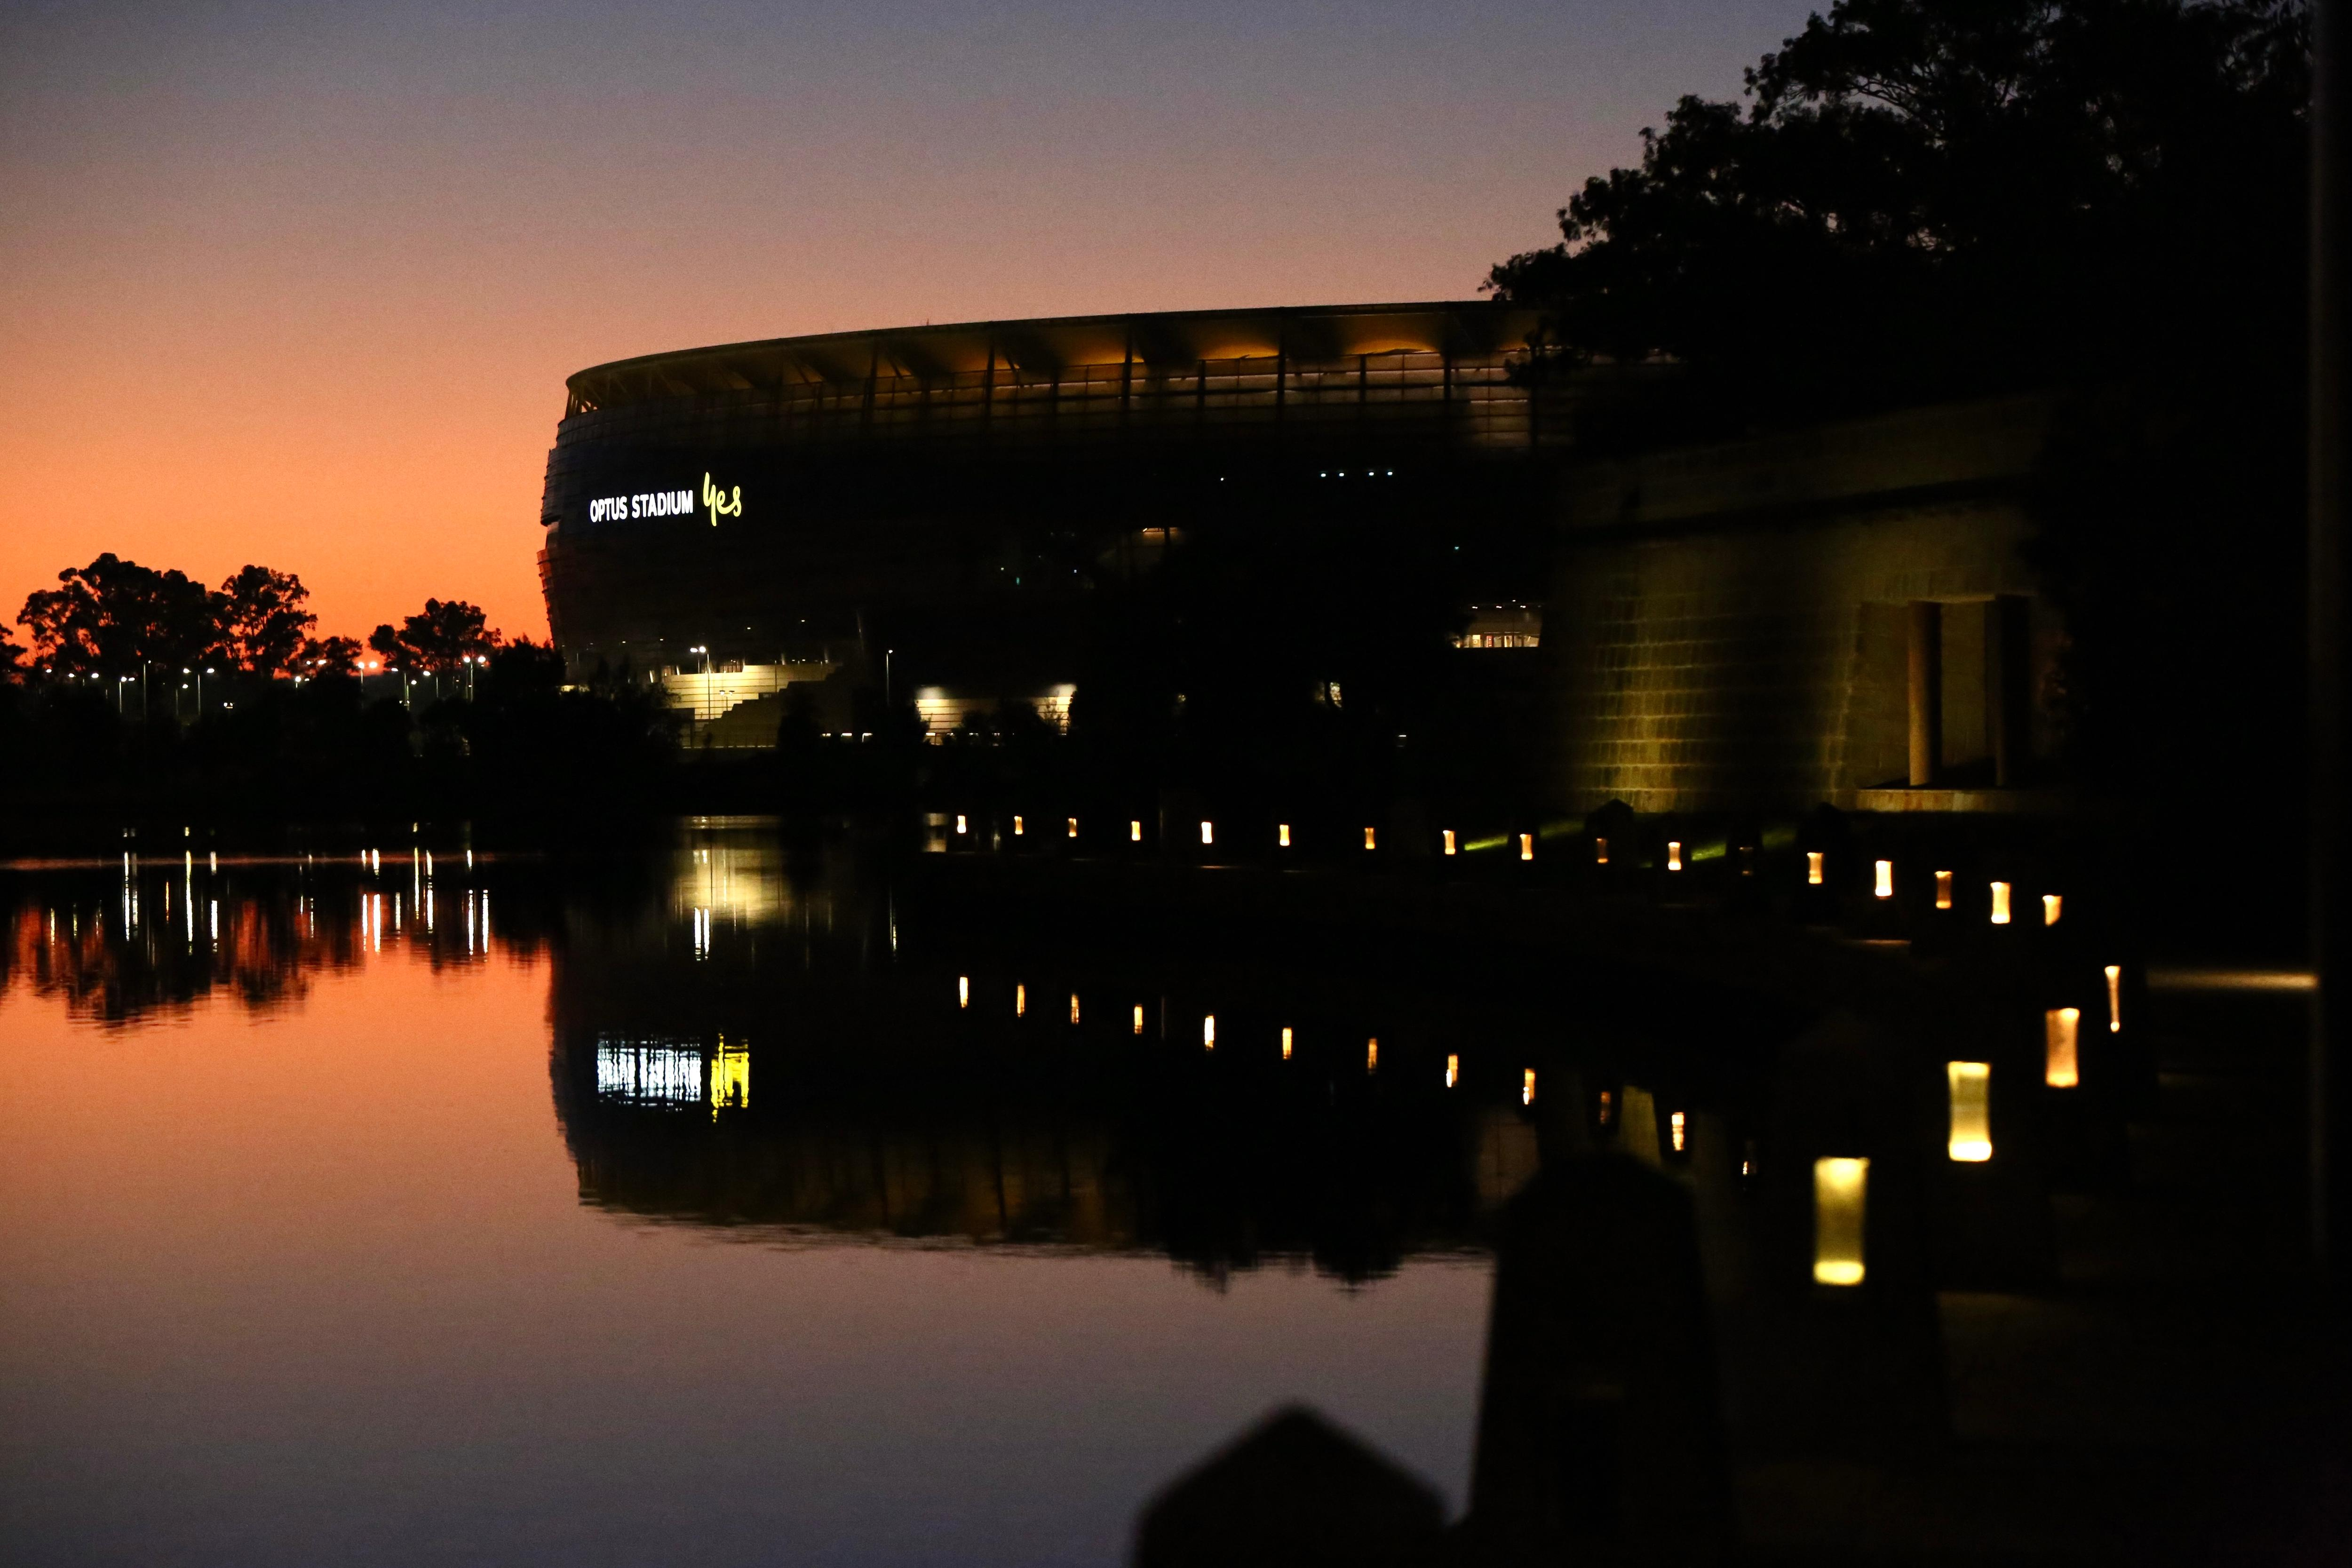 Dawn begins to appear with an orange hue over the Perth Stadium reflected onto the Swan River.